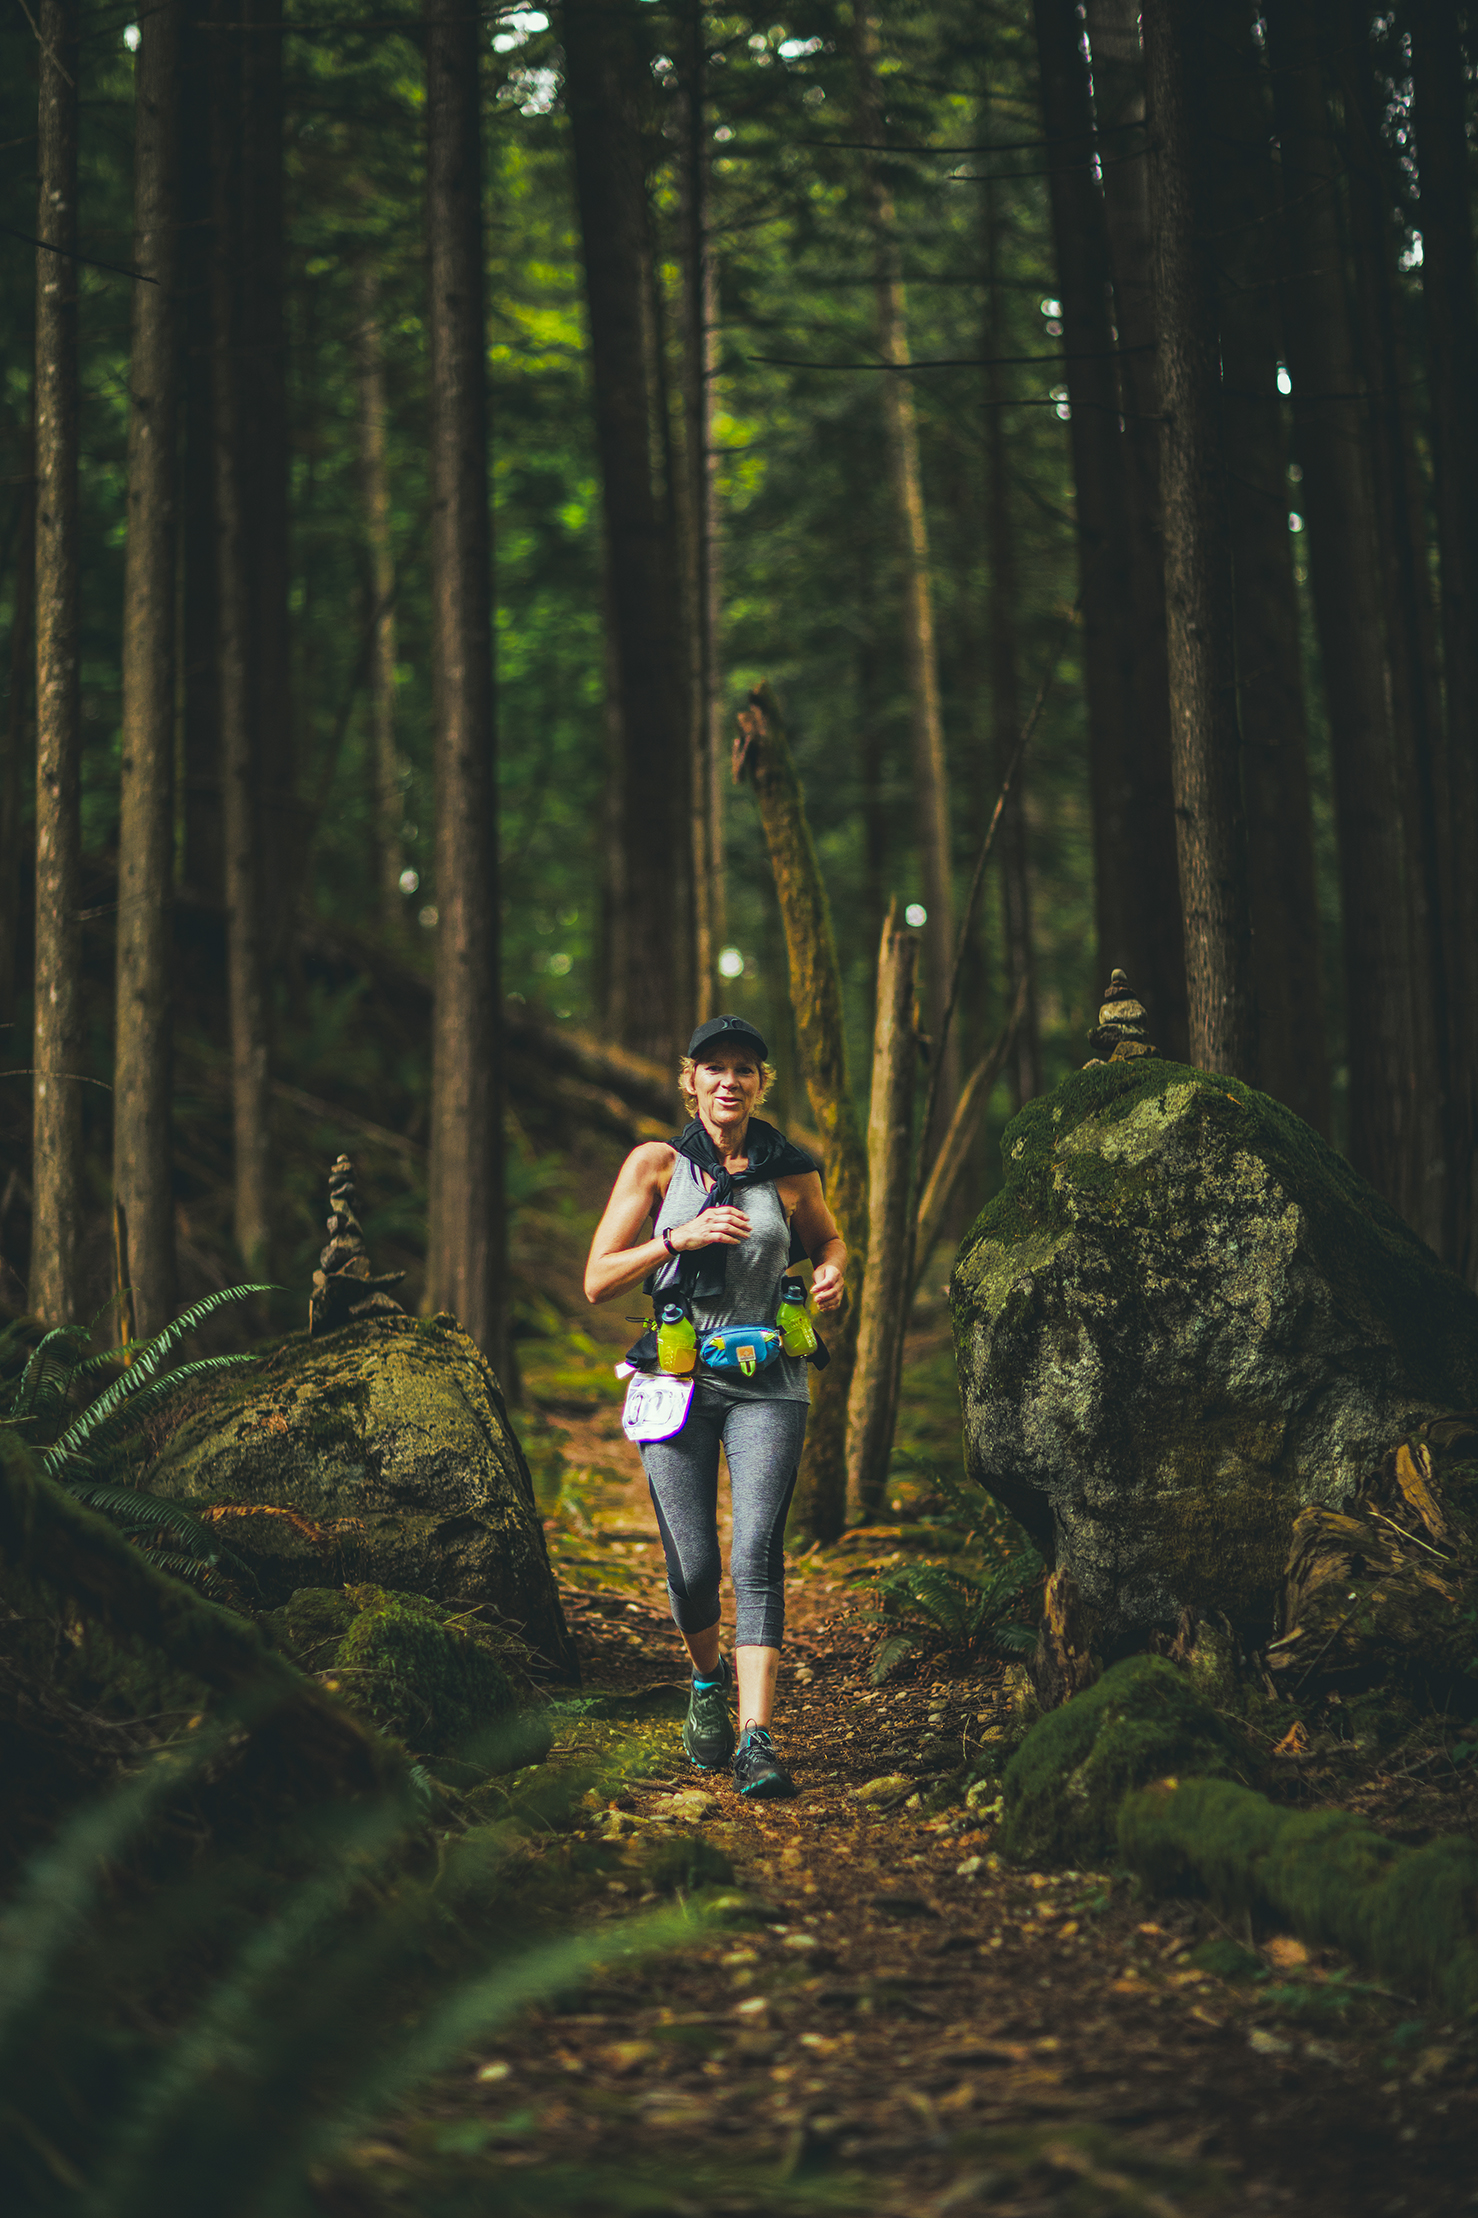 Fraser Valley Trail Races - Bear Mountain - IMG2_2259 by  Brice Ferre Studio - Vancouver Portrait Adventure and Athlete Photographer.jpg